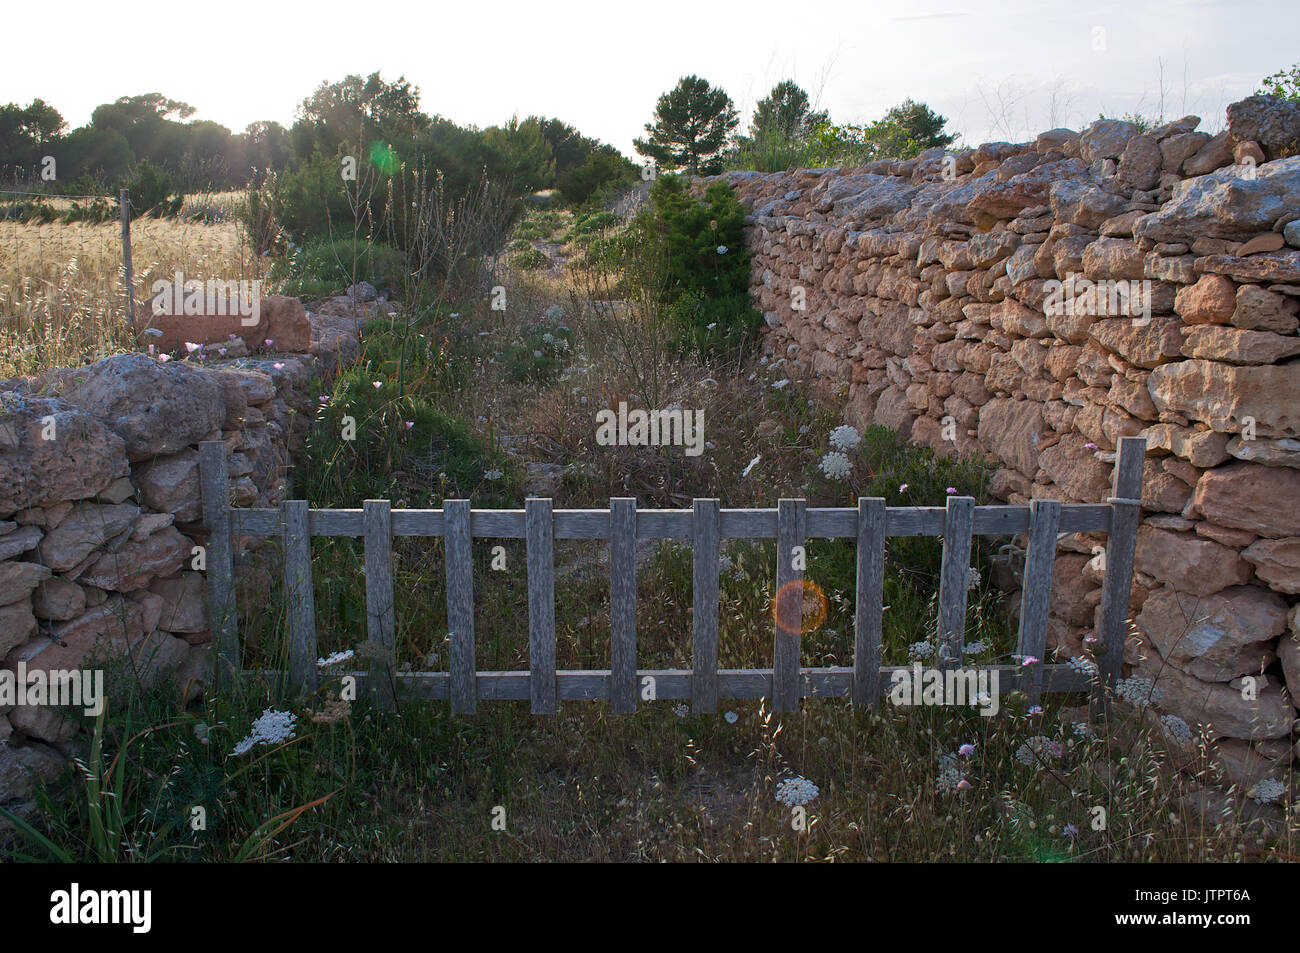 An old wood fence closes a track made with traditional stonewalls at La Mola (Formentera, Balearic Islands, Spain) - Stock Image